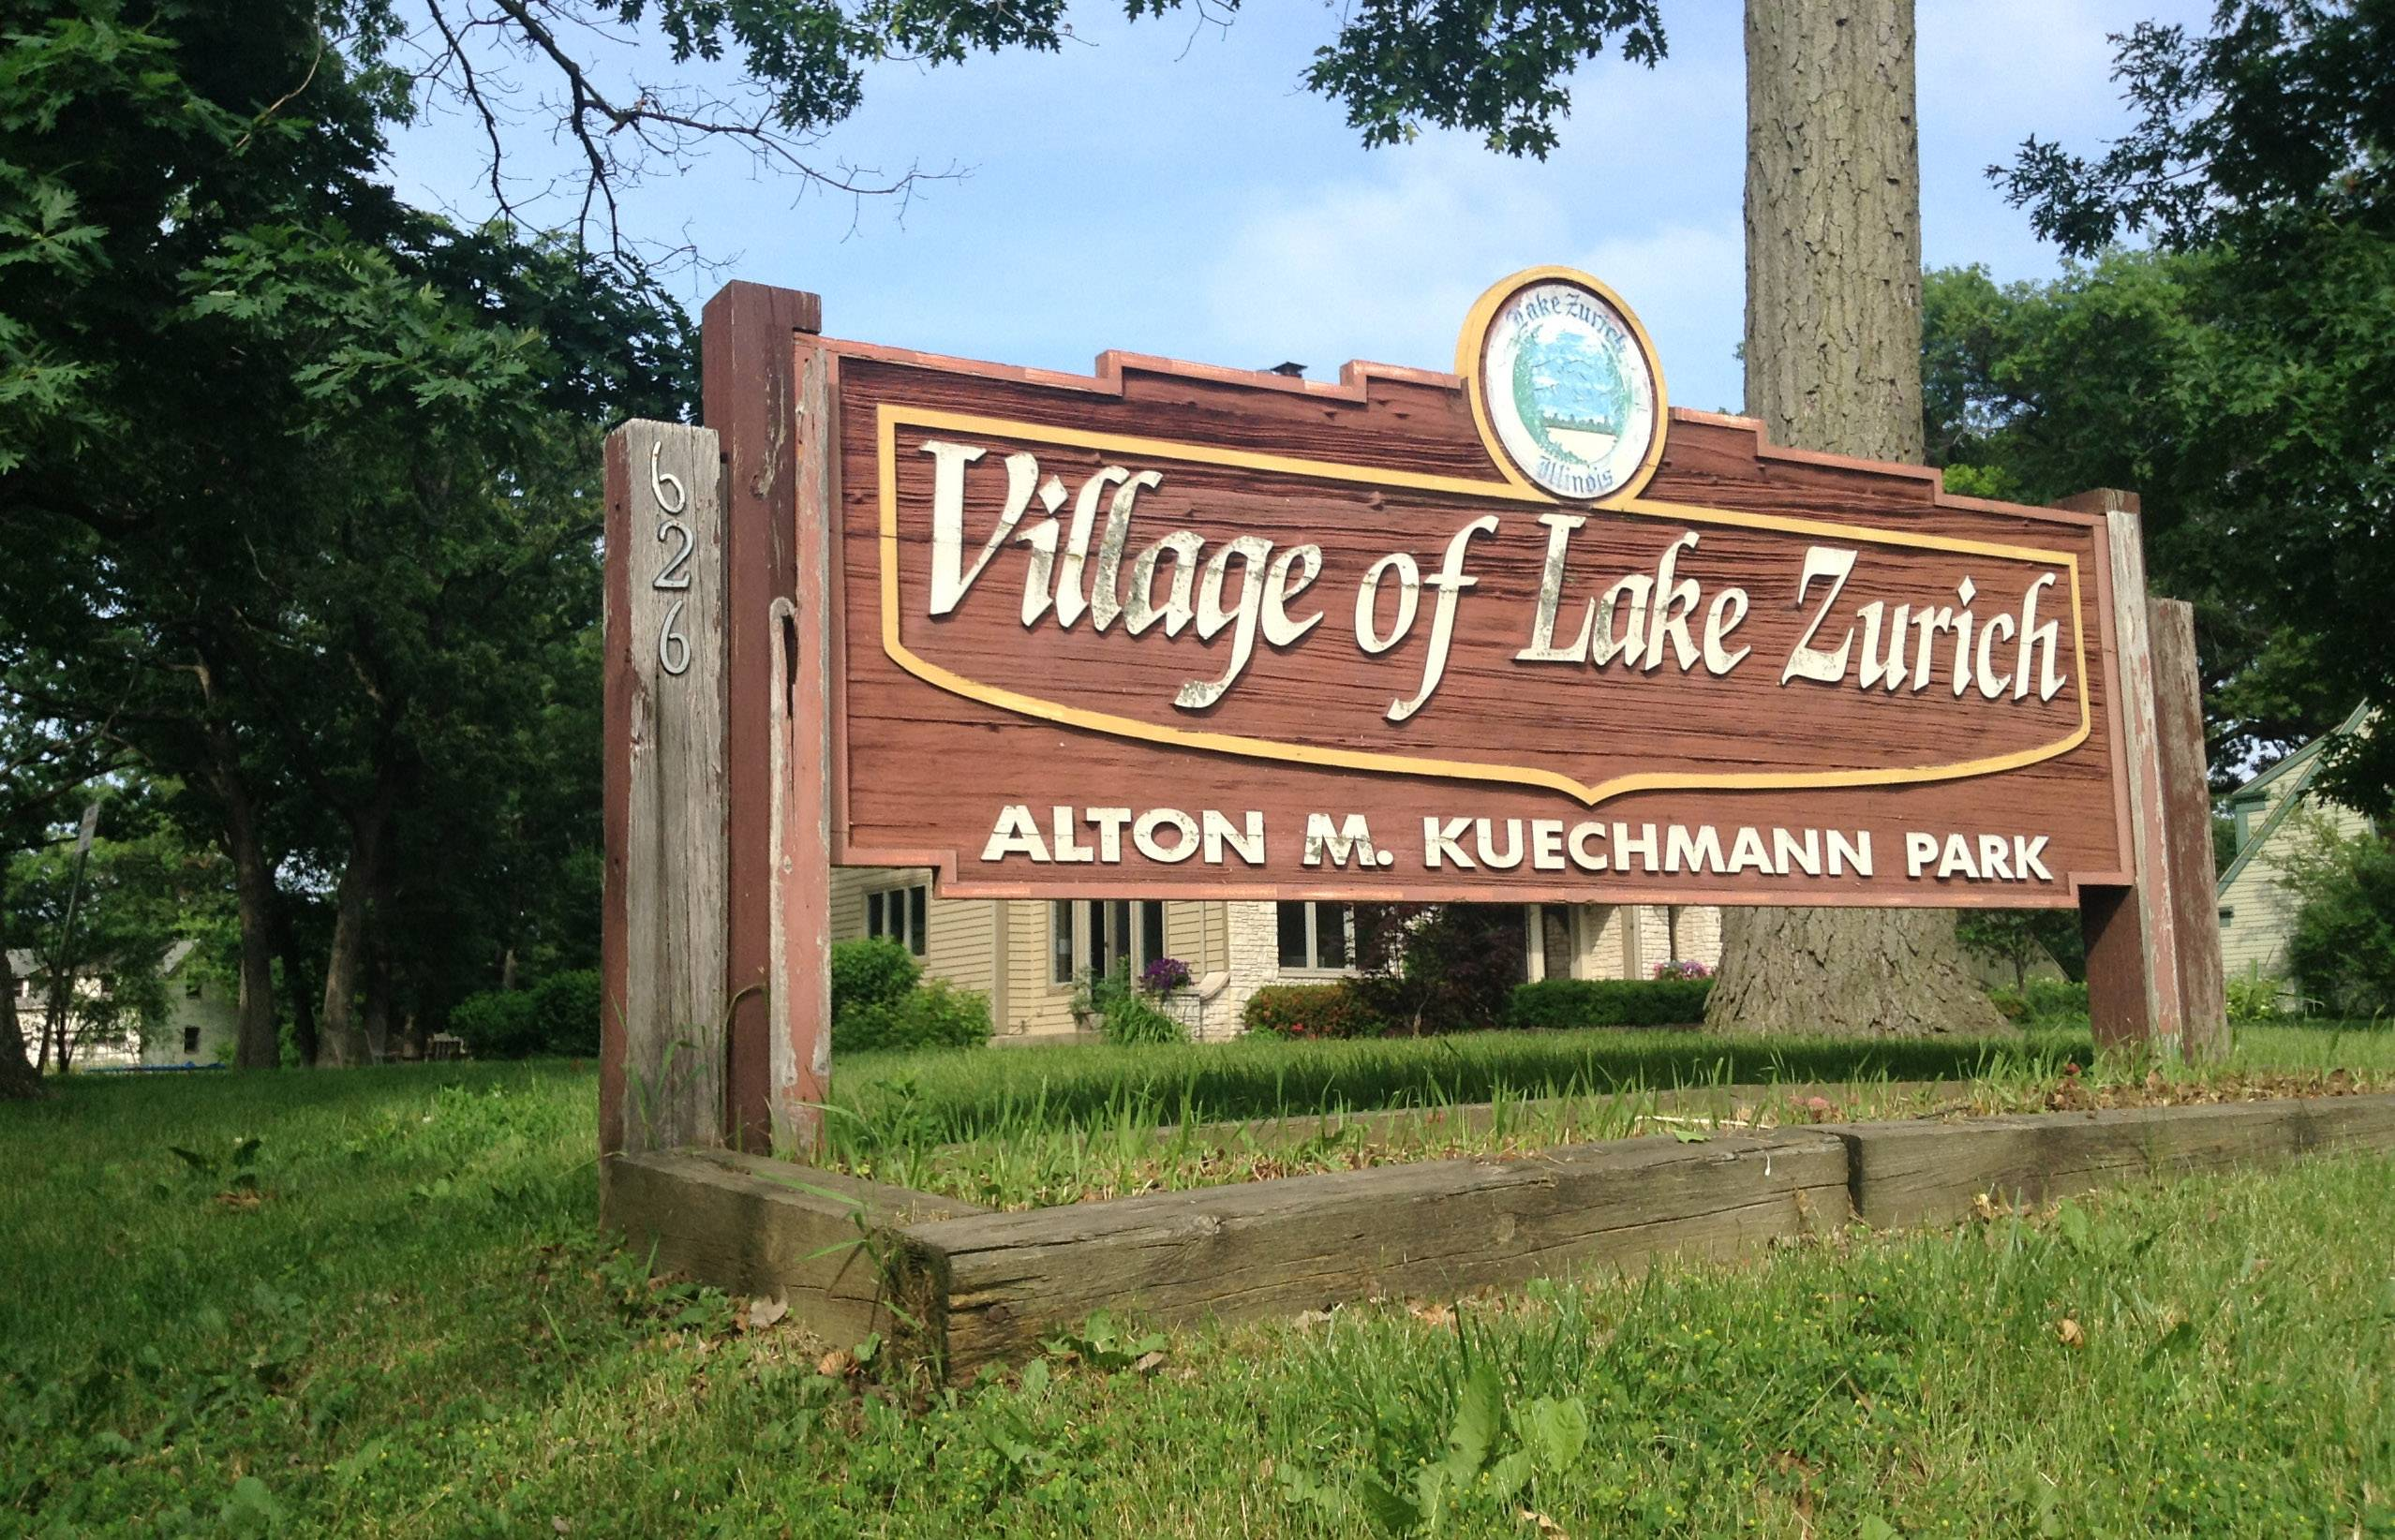 Lake Zurich park sale idea on hold, issue returning to advisory committee